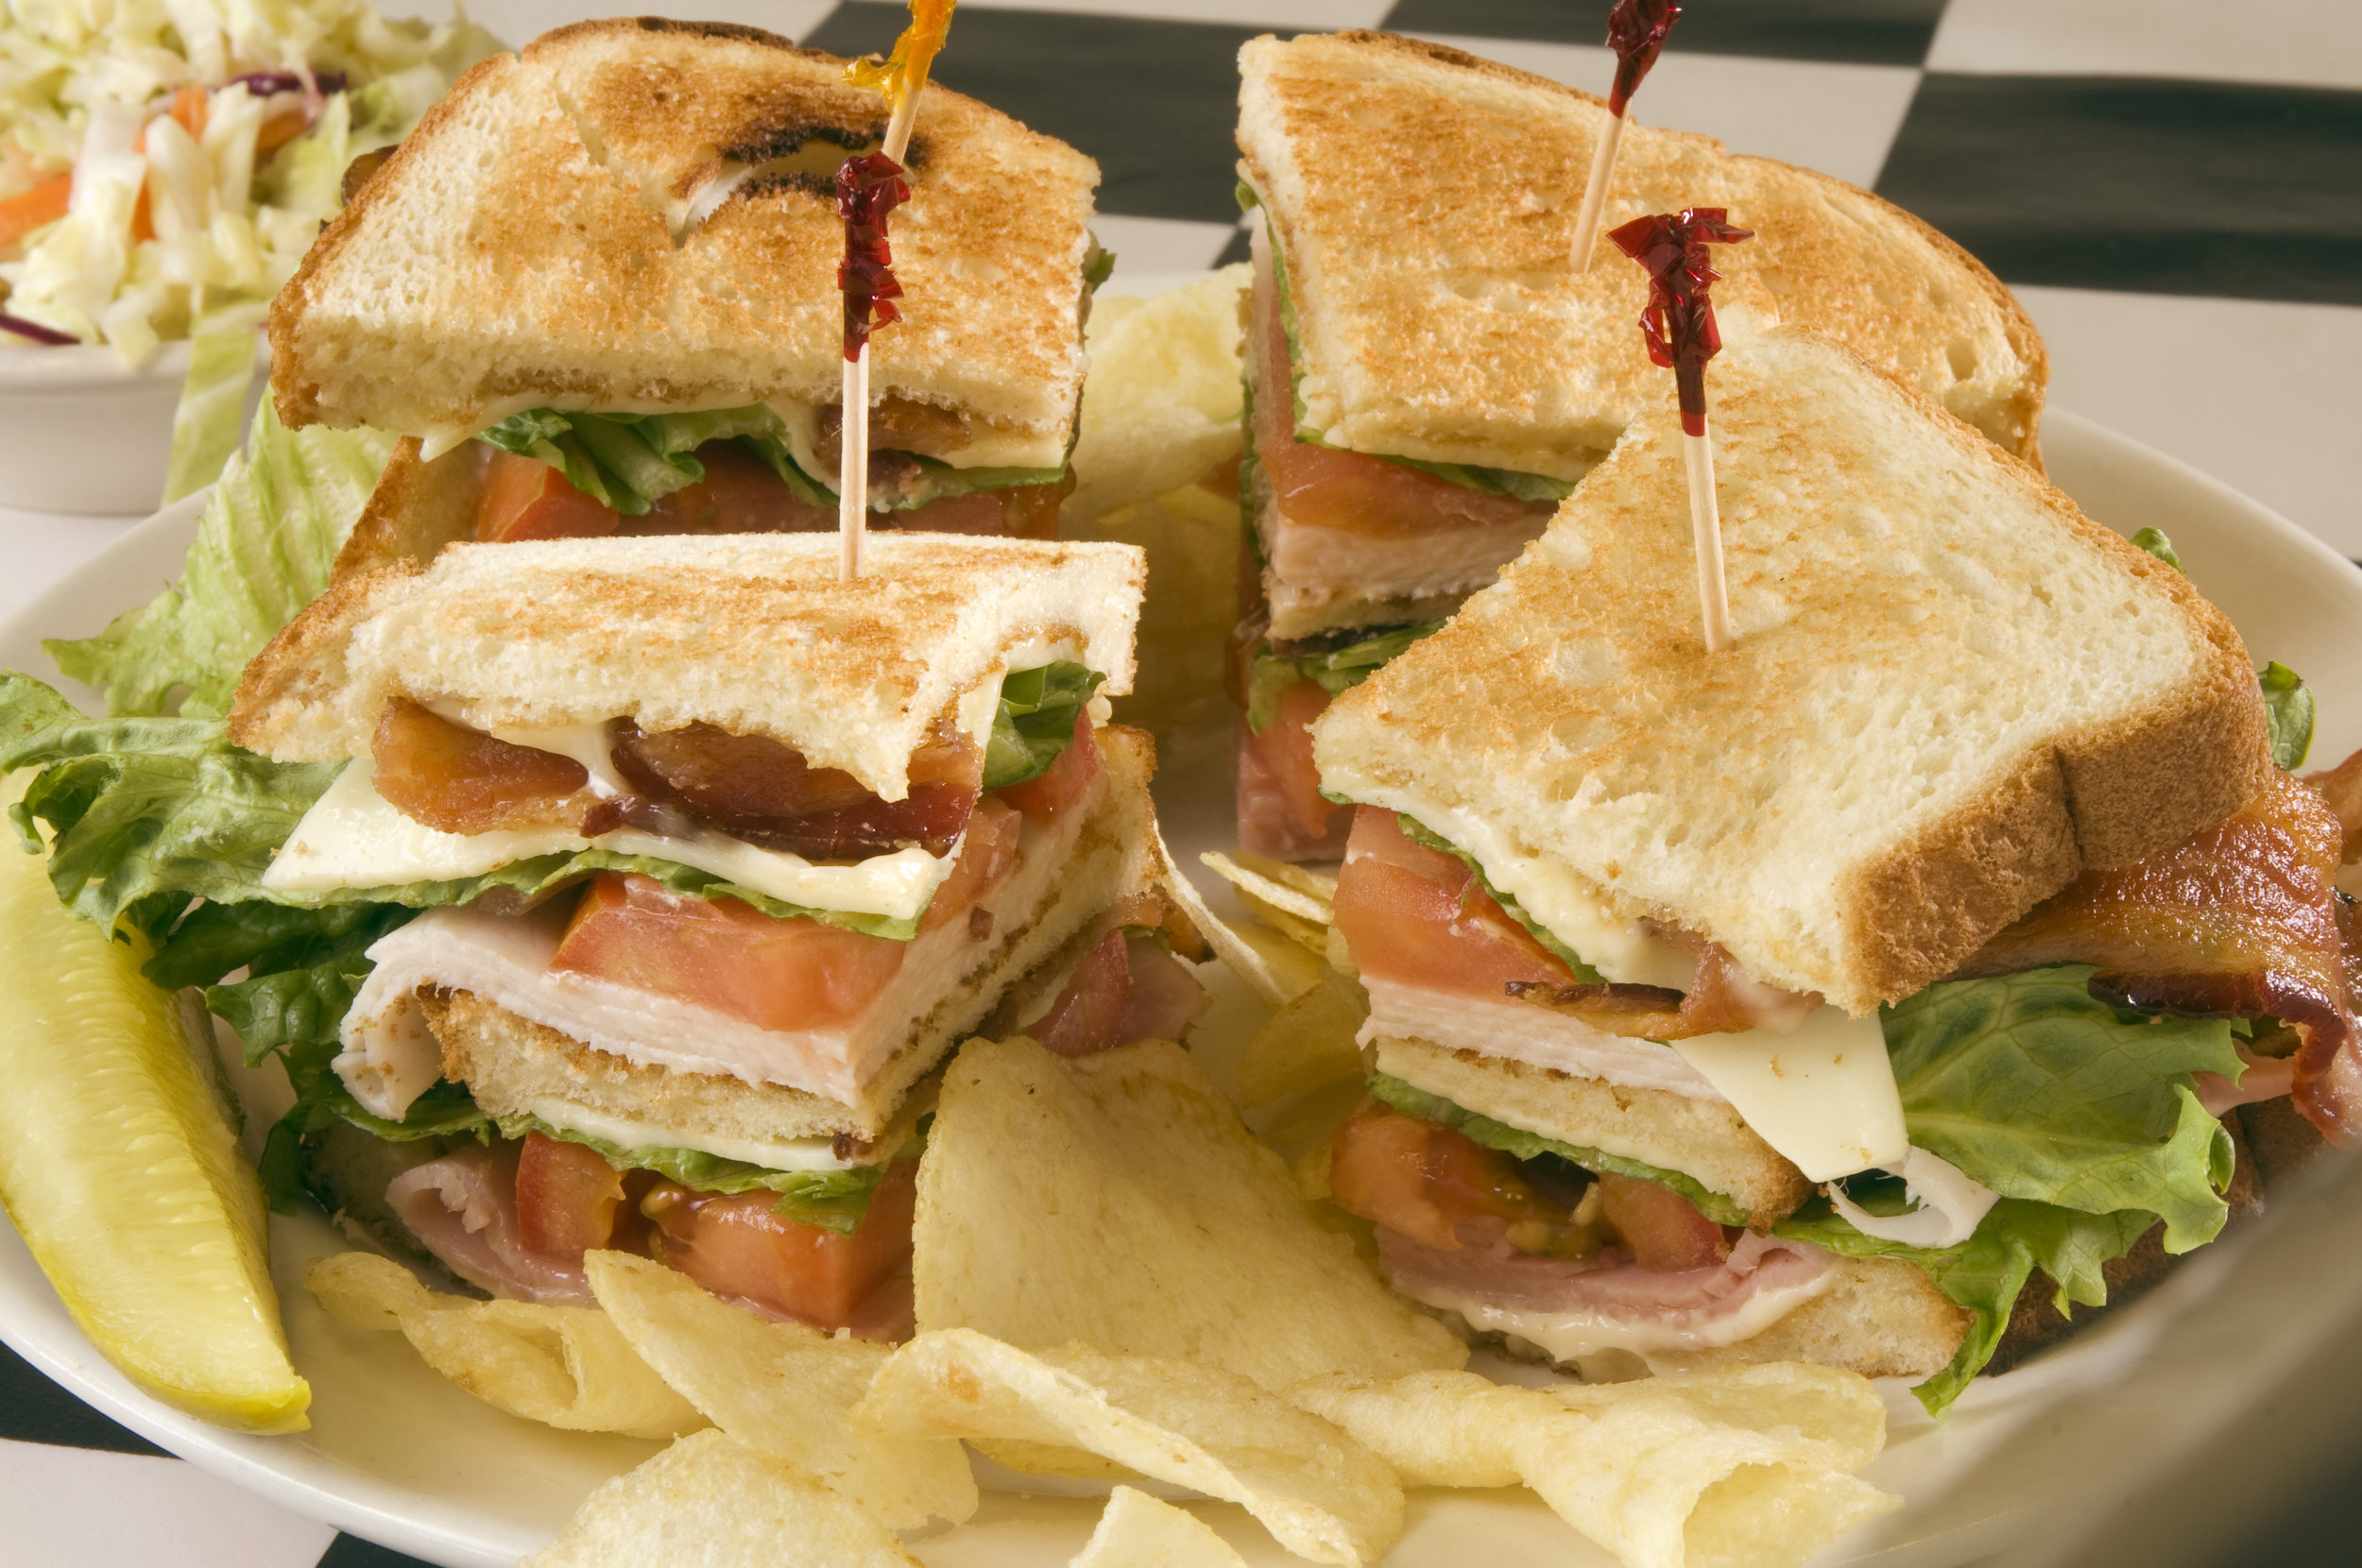 Plantation-cafe-and-Deli-Hilton-Head-Island-SC-Lunch.jpg